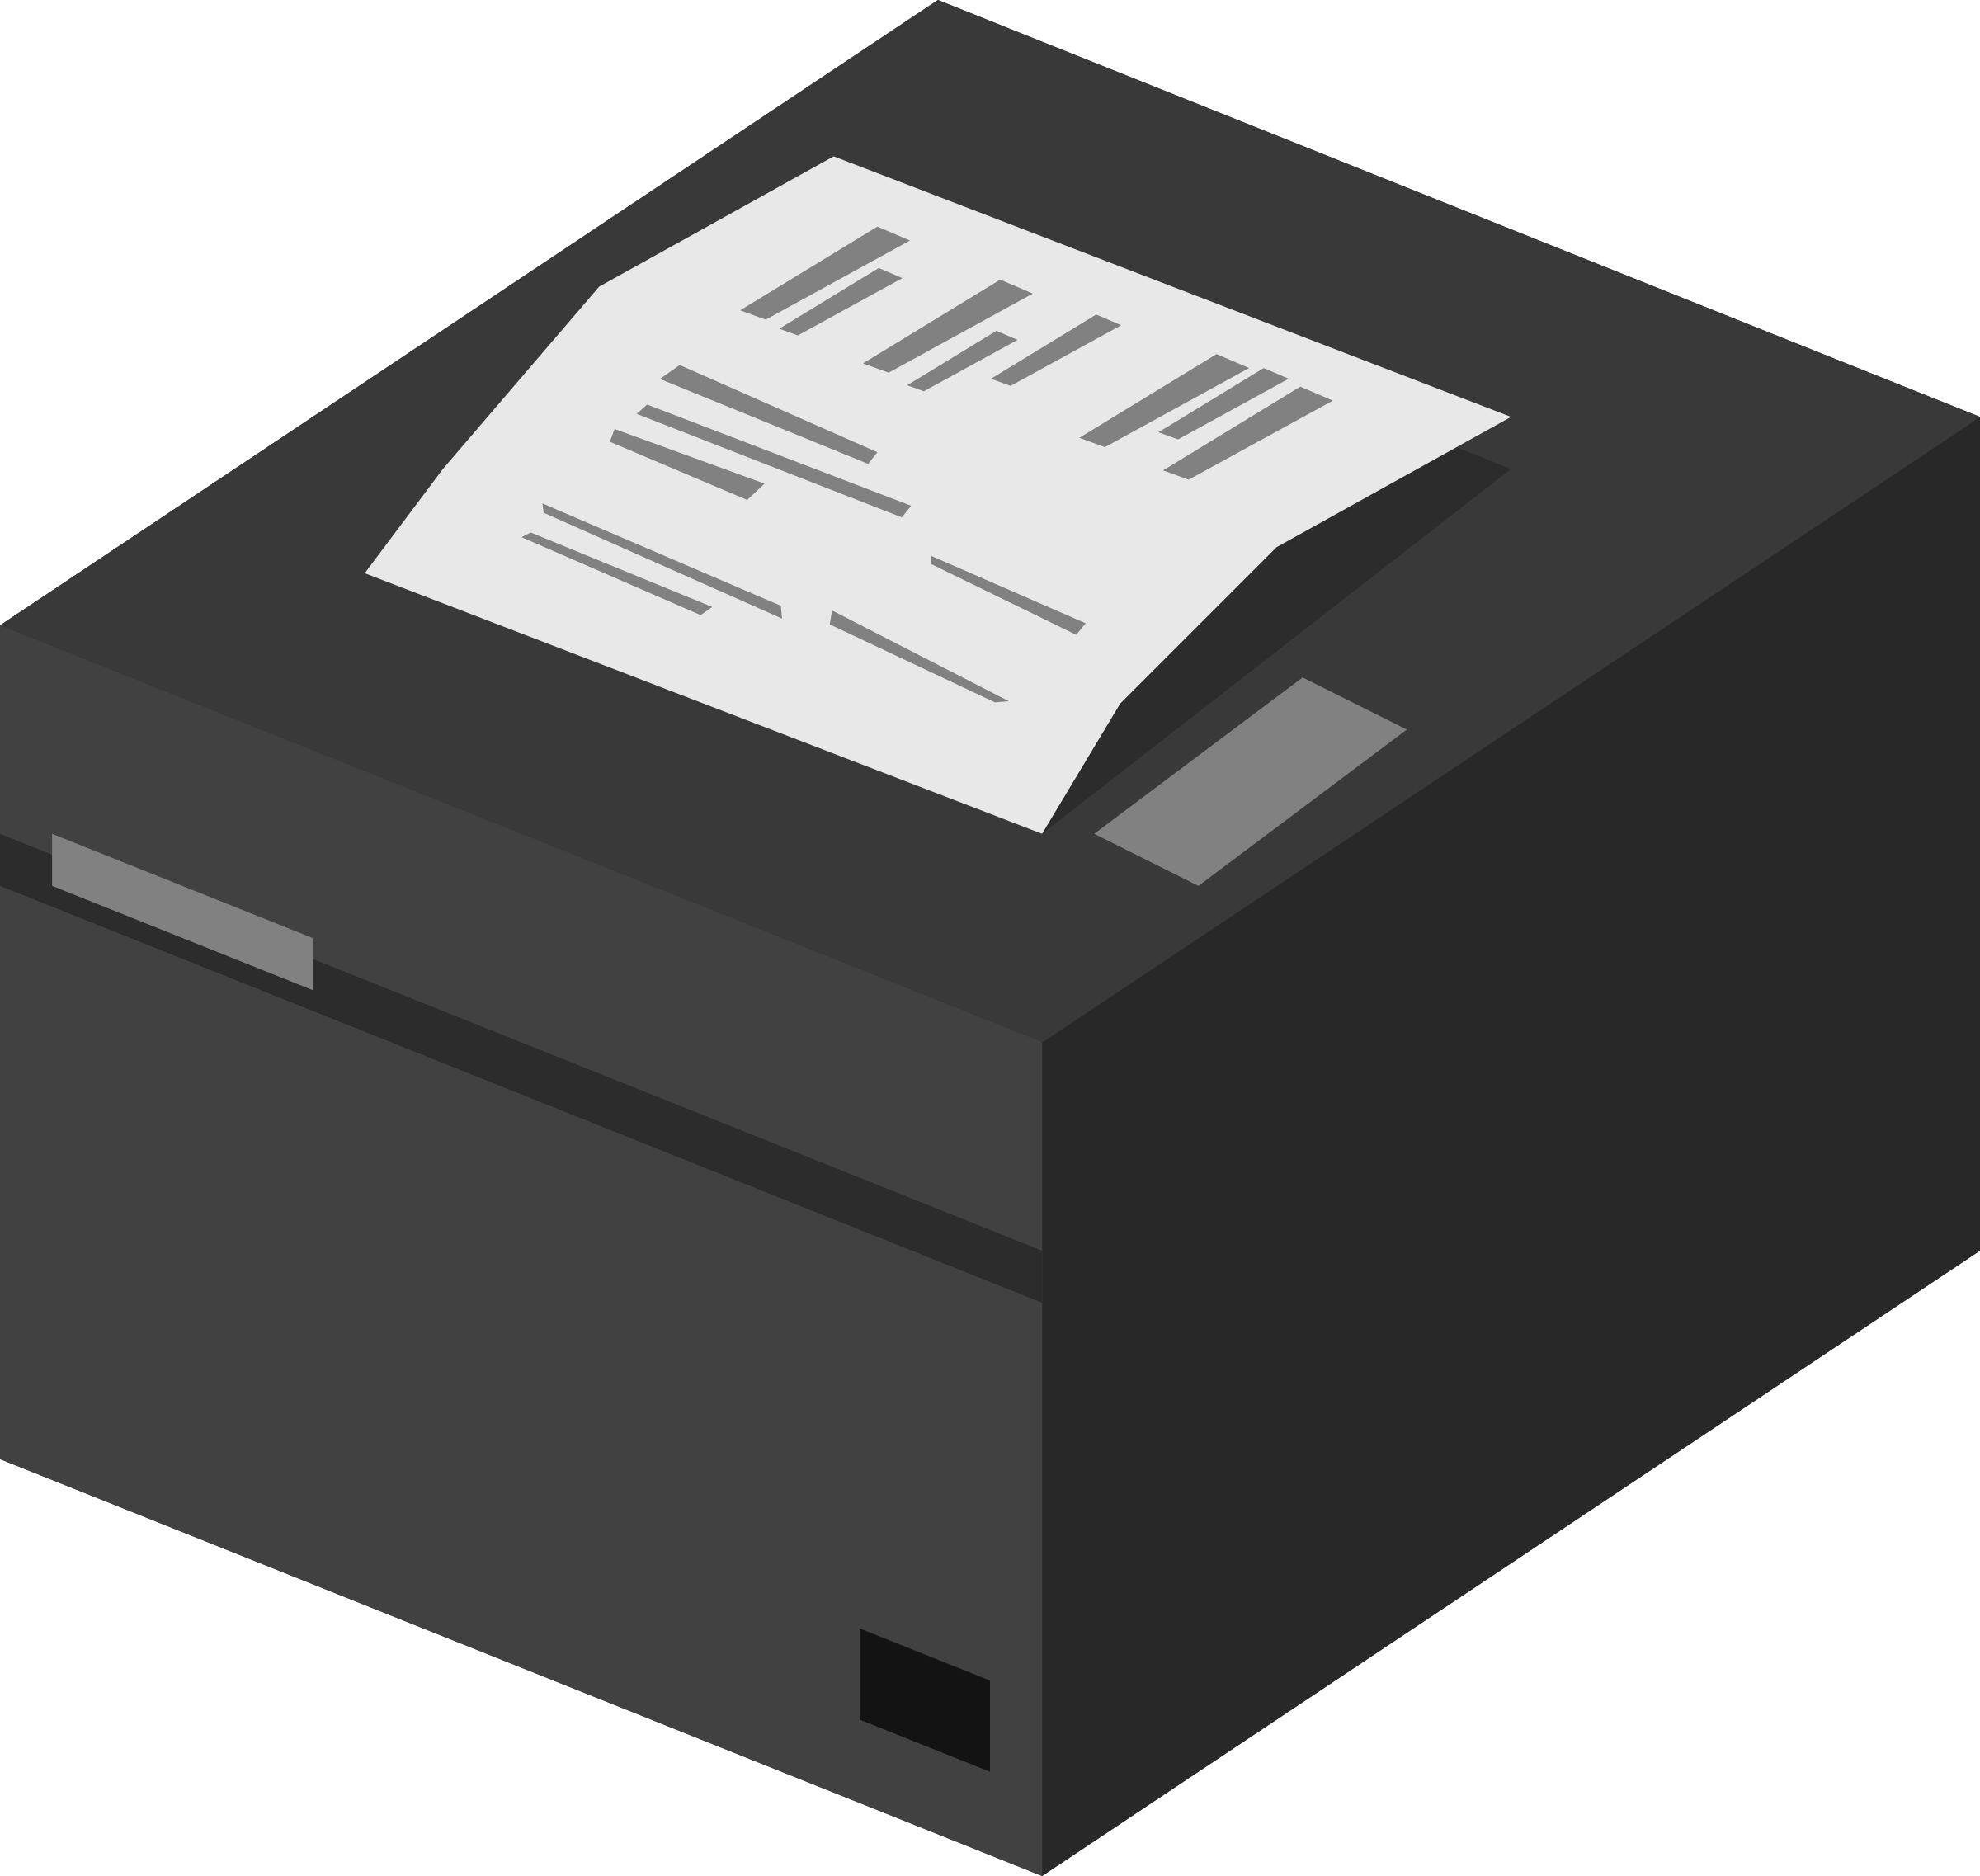 Thermal Printer by qubodup